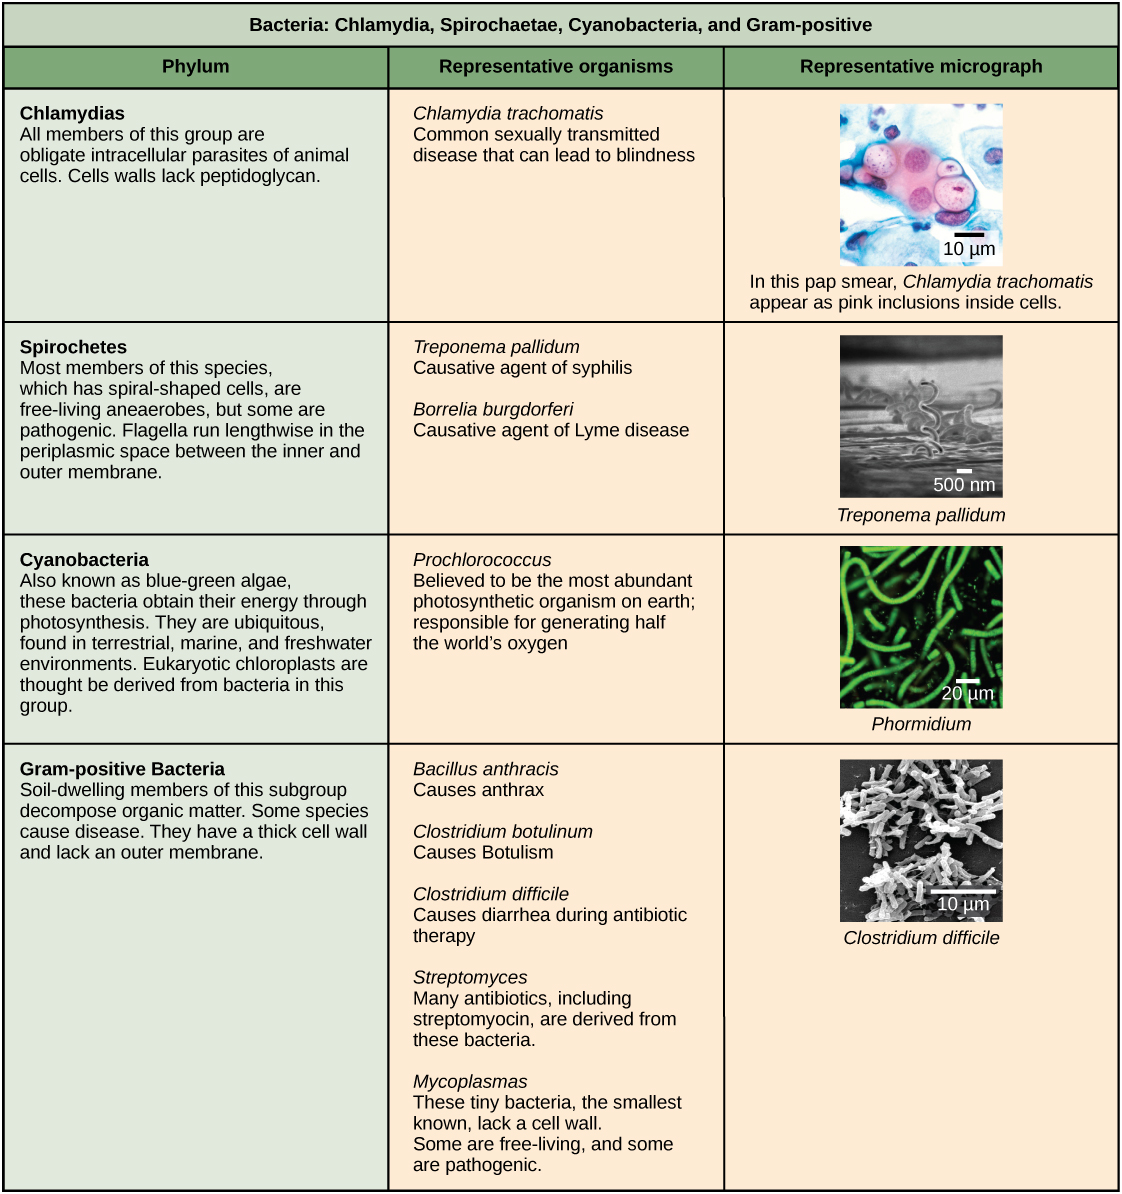 This table that describes four types of bacteria, Chlamydia, Spirochaetae, Cyanobacteria, and Gram-positive. The table is organized by phylum, their representative organisms, and a representative micrograph